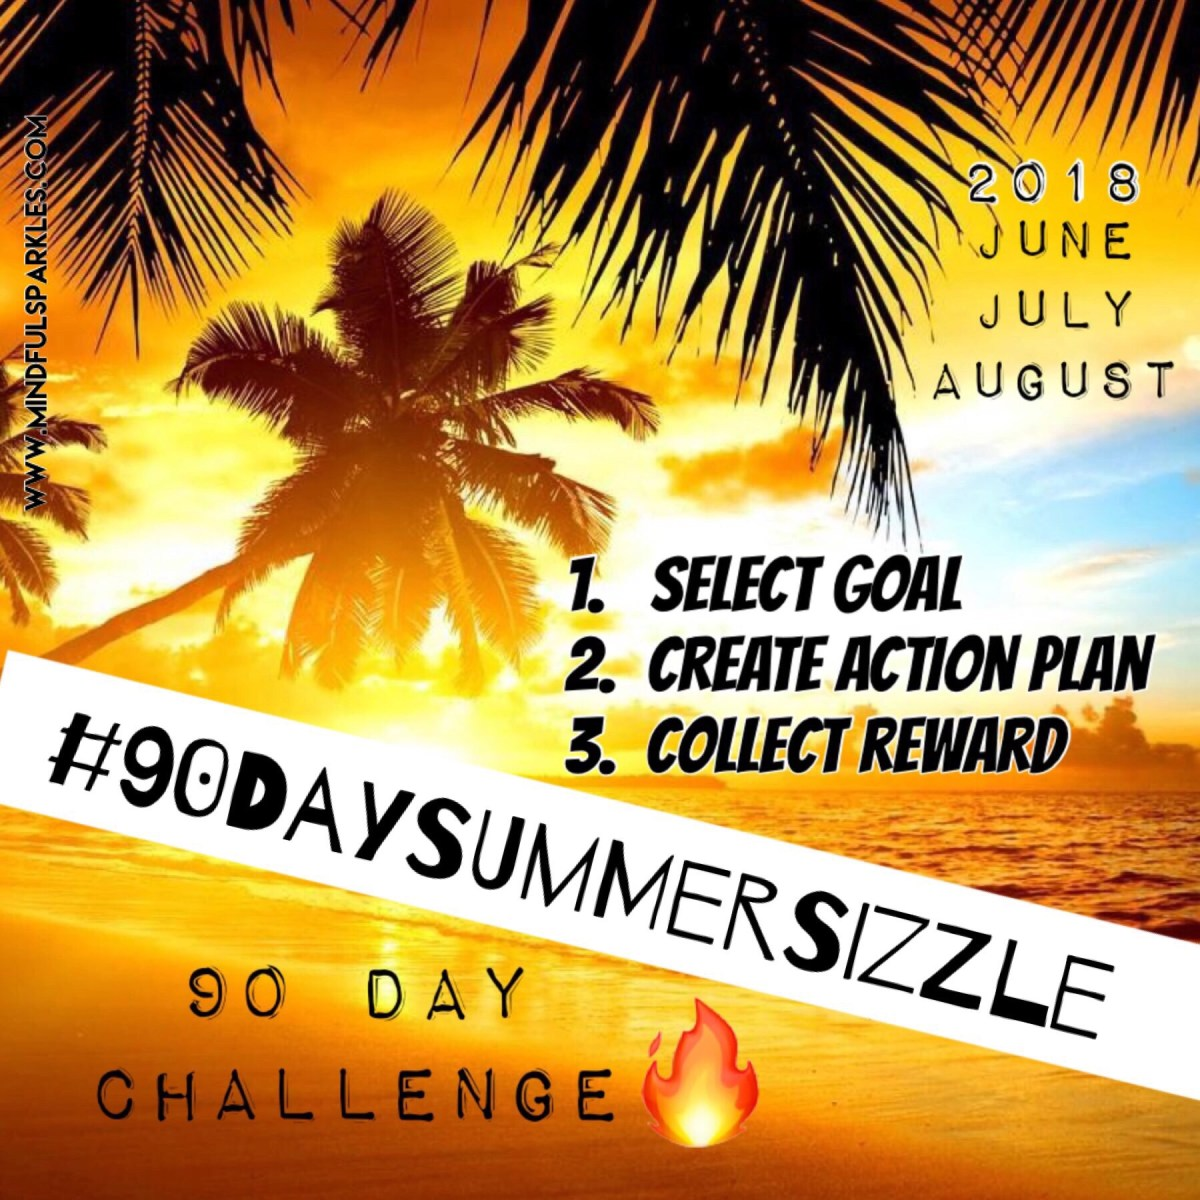 90 Day Summer Sizzle Challenge 🔥🔥🔥